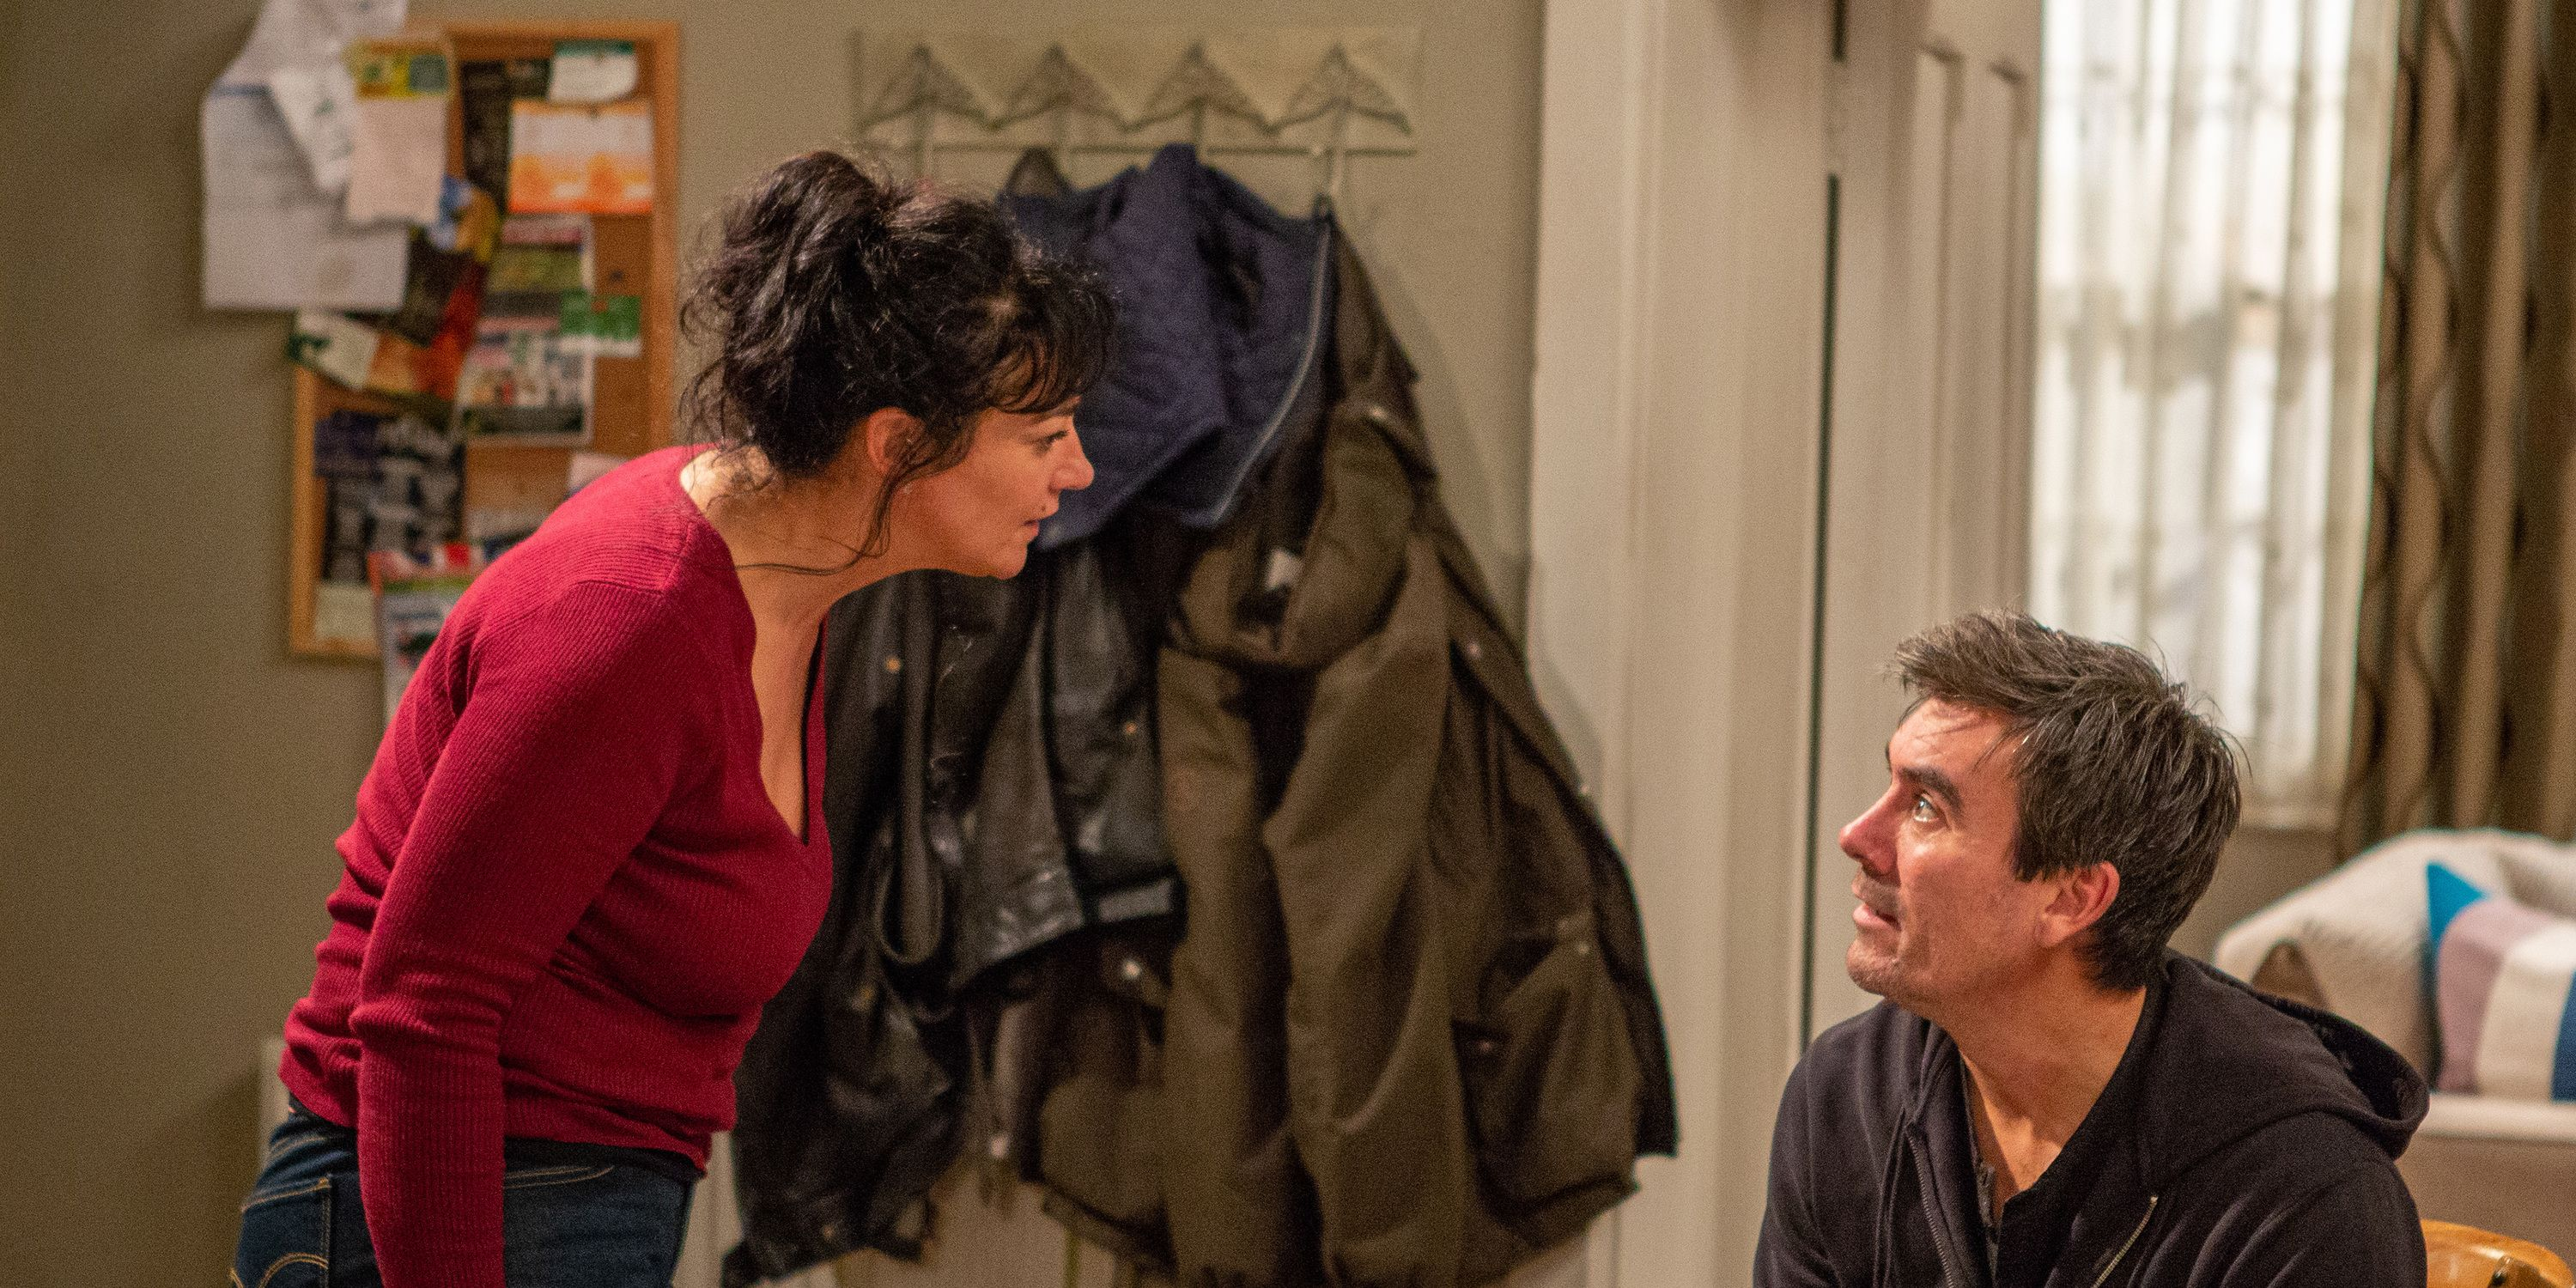 Moira Dingle pushes Cain into making a confession in Emmerdale